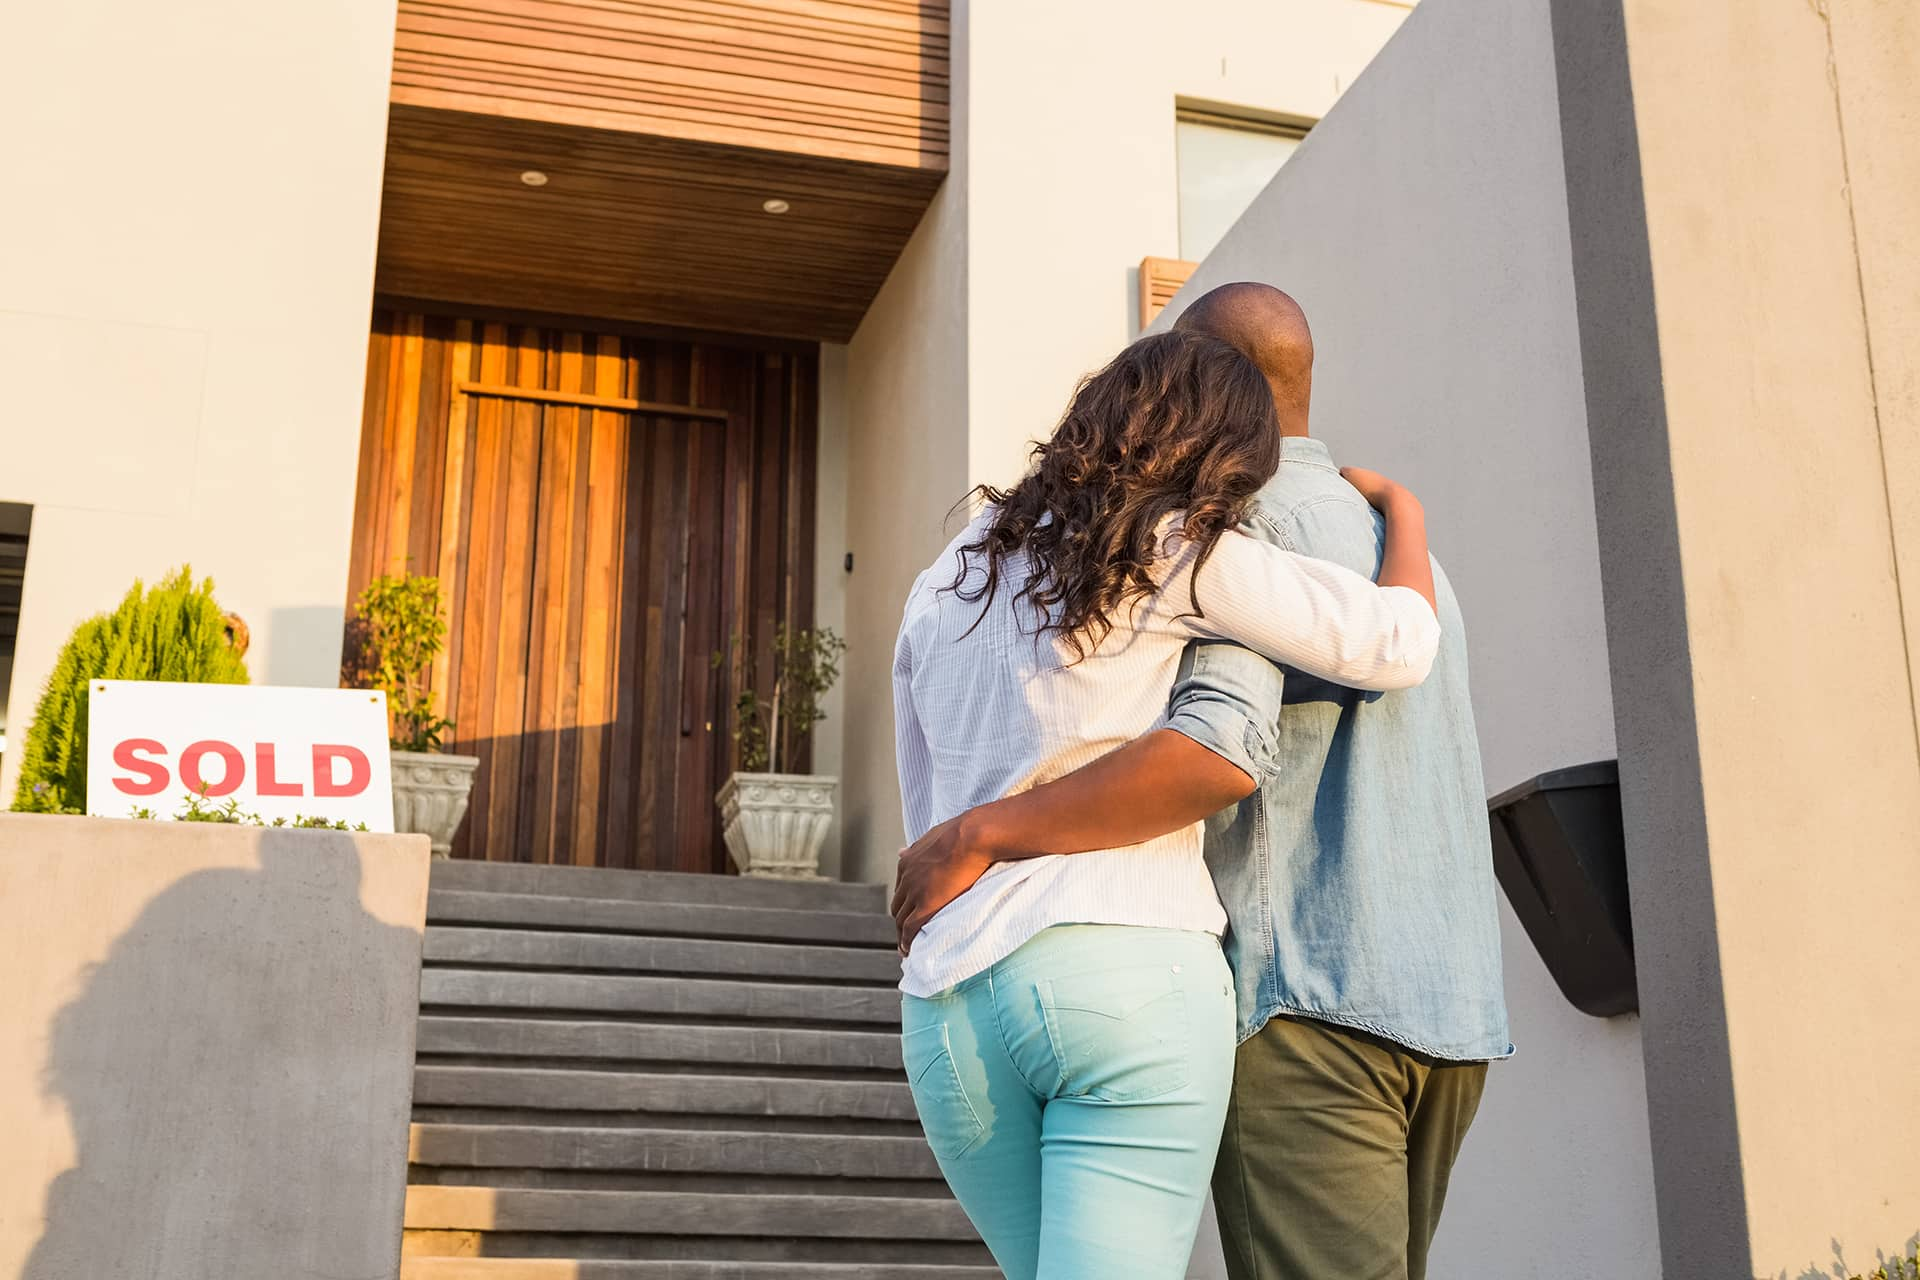 Behind view of young couple with arms around one another, standing at bottom of stairs, looking at front door. SOLD sign